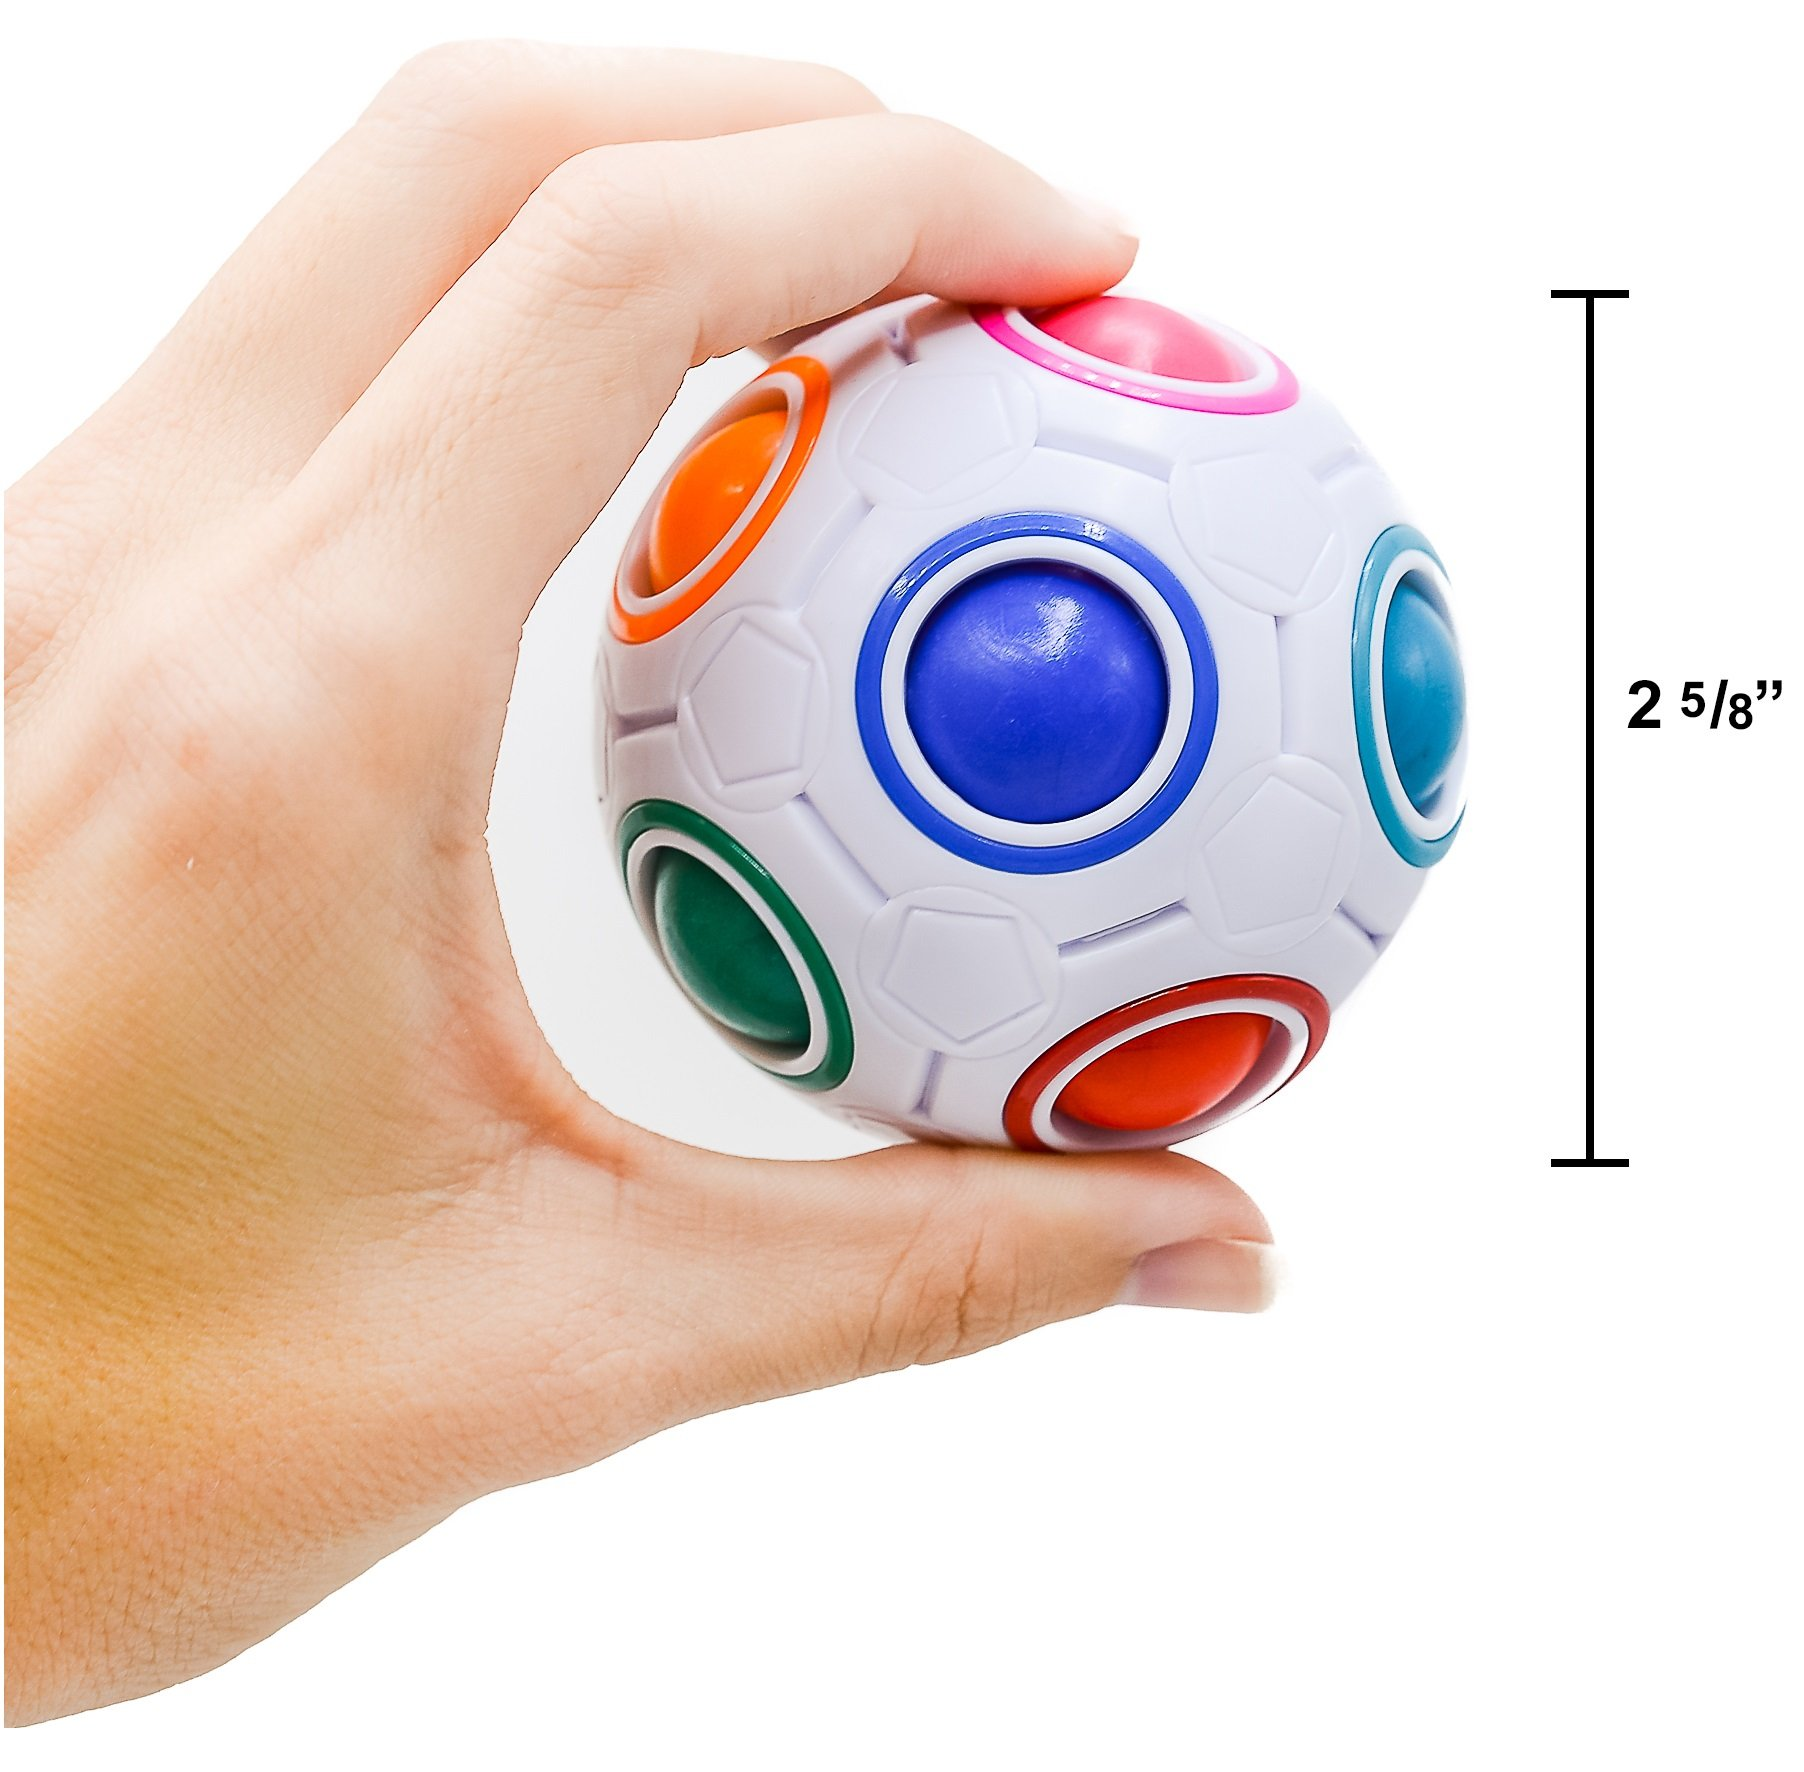 Toyzabo Challenging Puzzle Speed Cube Ball, Matching Colors Game, Fun Fidget Toy Brain Teaser with 11 Rainbow Colors (72 Pcs) by Toyzabo (Image #8)